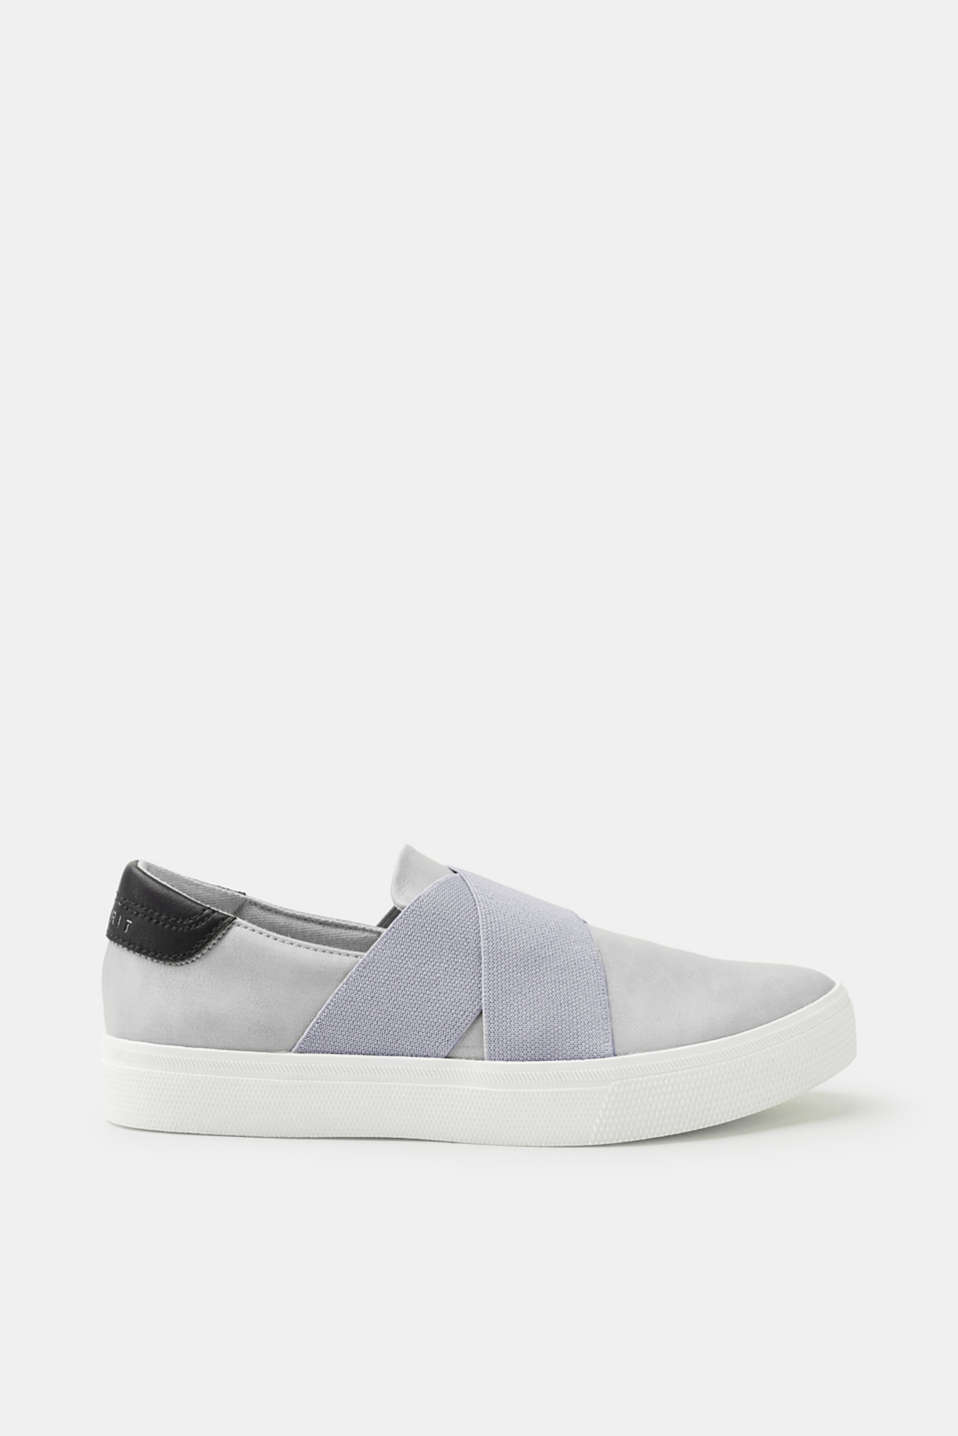 Esprit - Slip-on trainers in faux leather